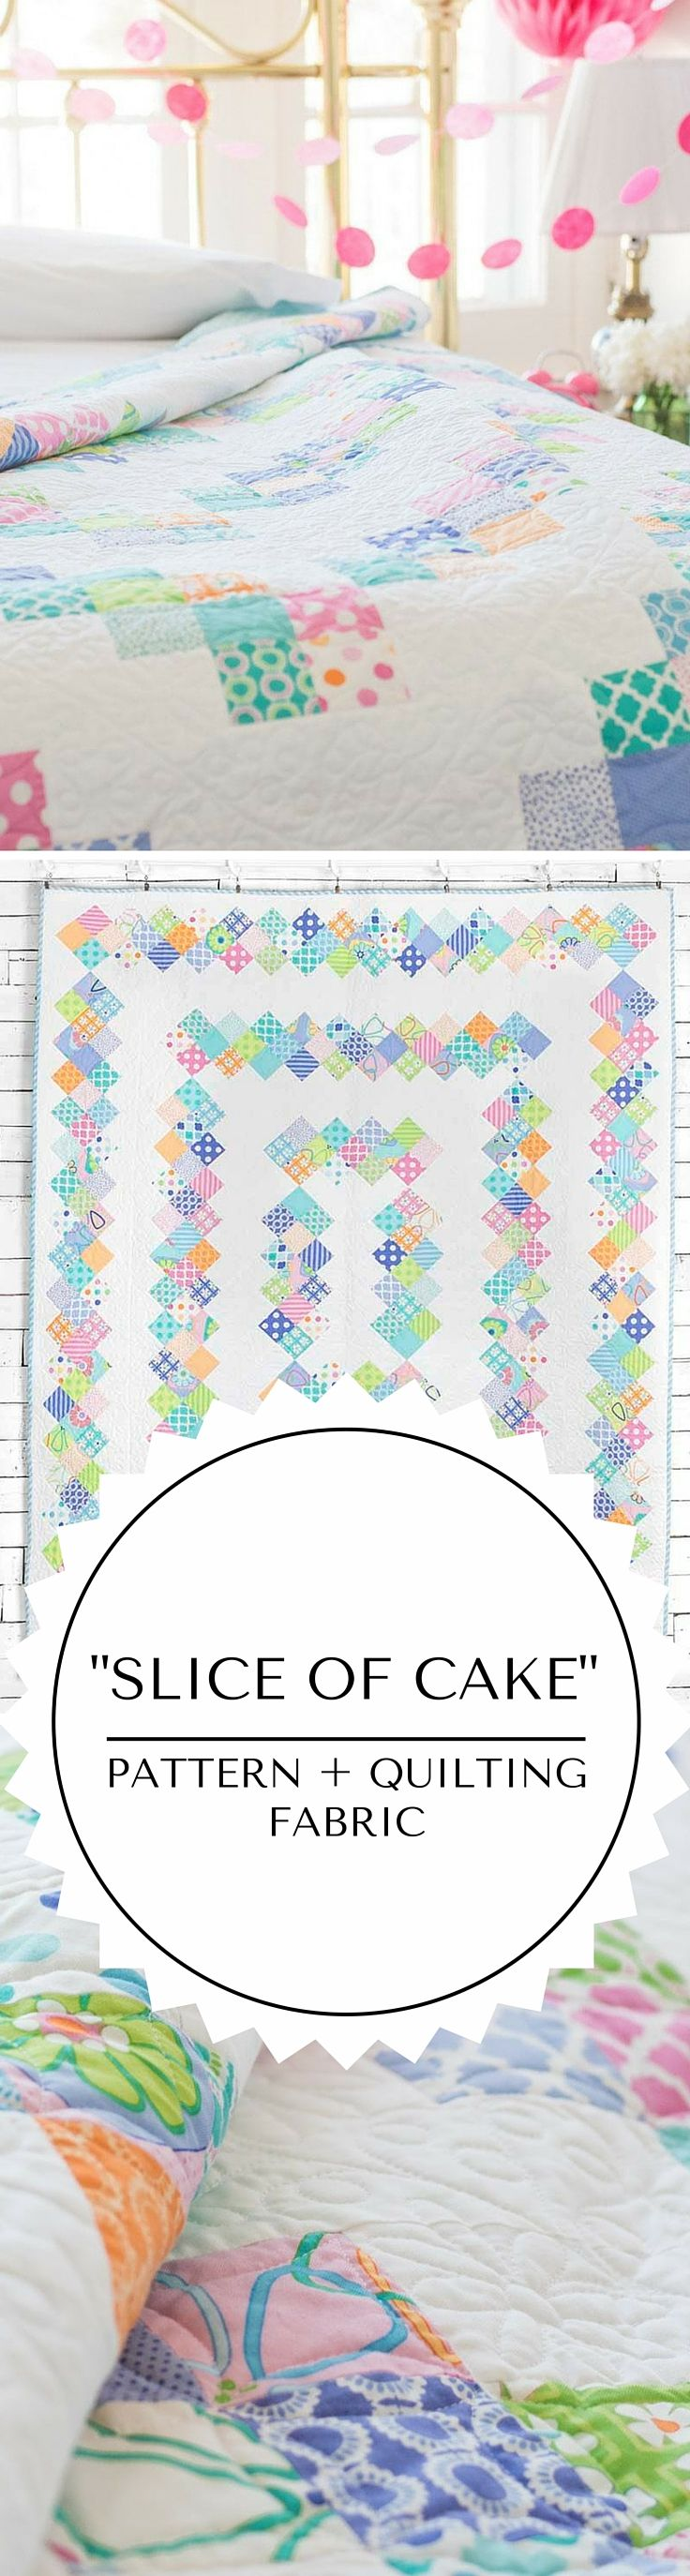 Slice of Cake Quilting Project - Pattern and Quilting Fabric